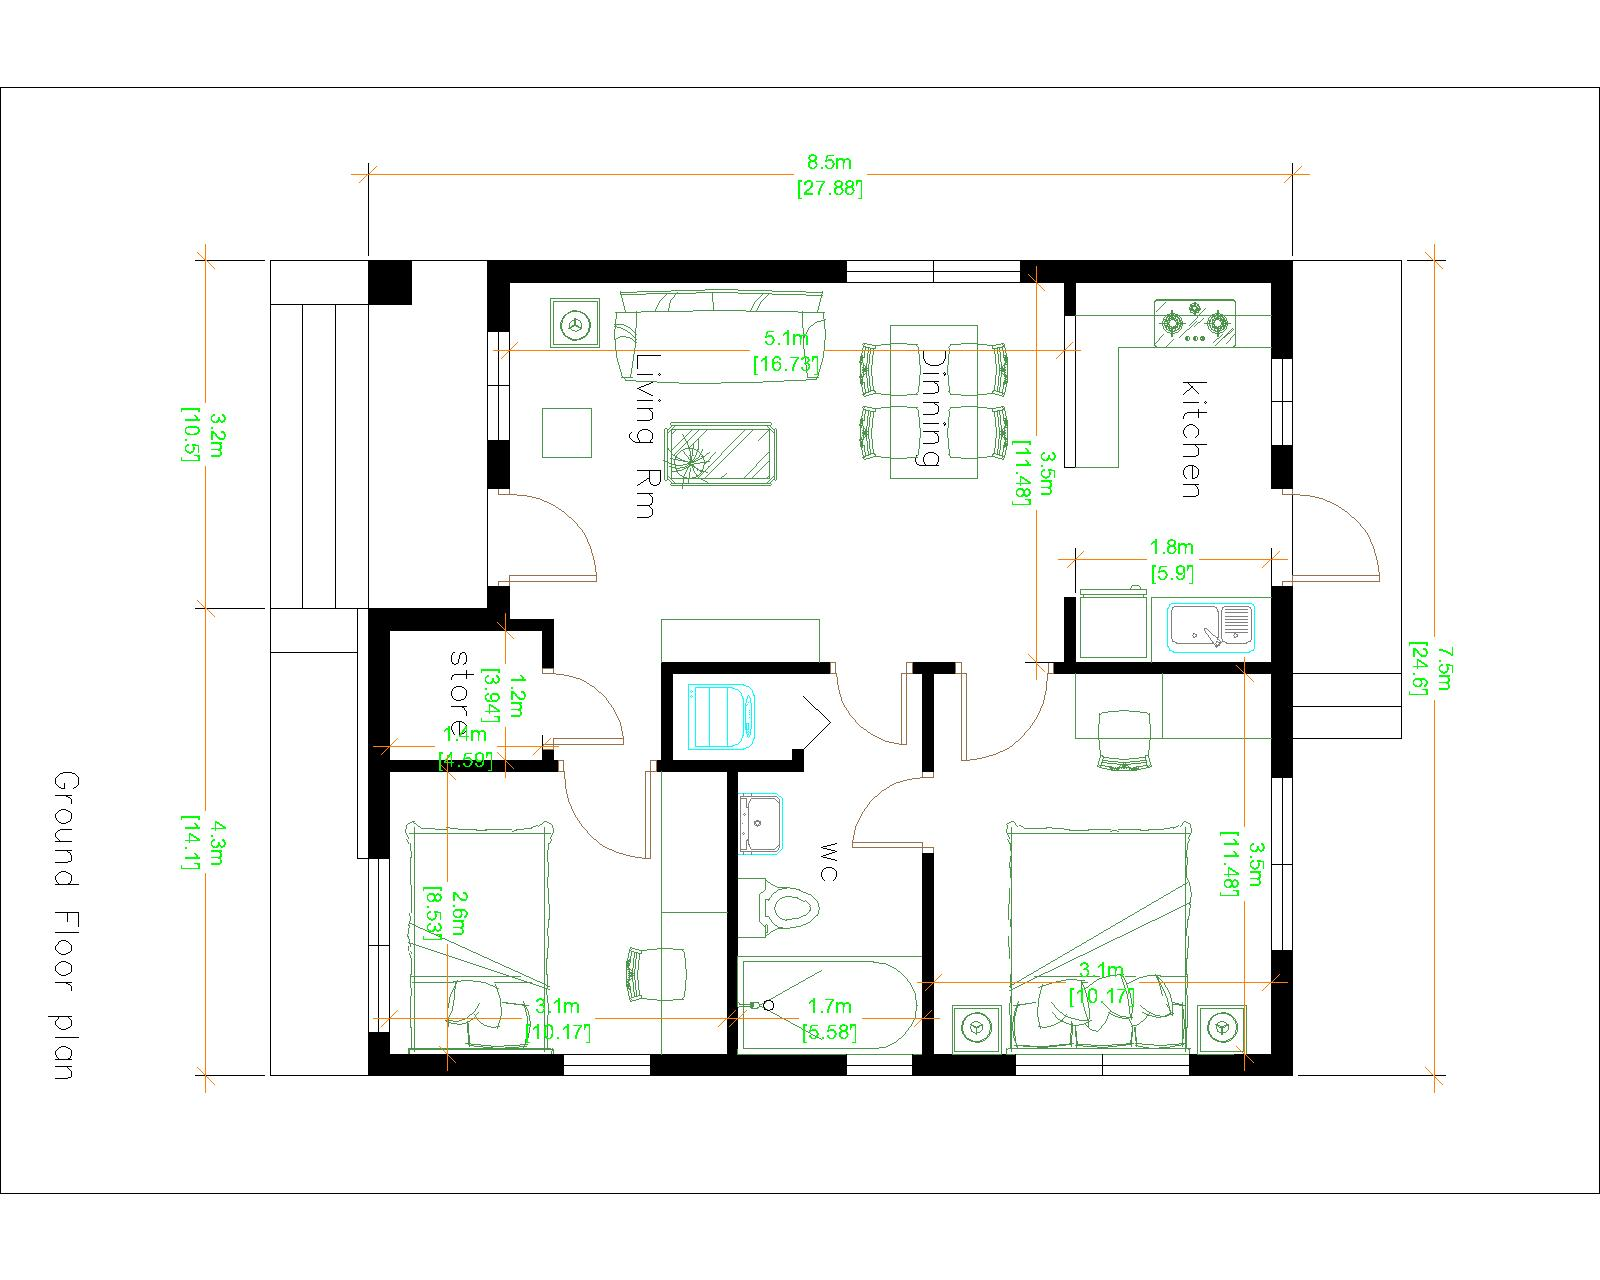 Small House design 7.5x8.5 with 2 beds hip roof